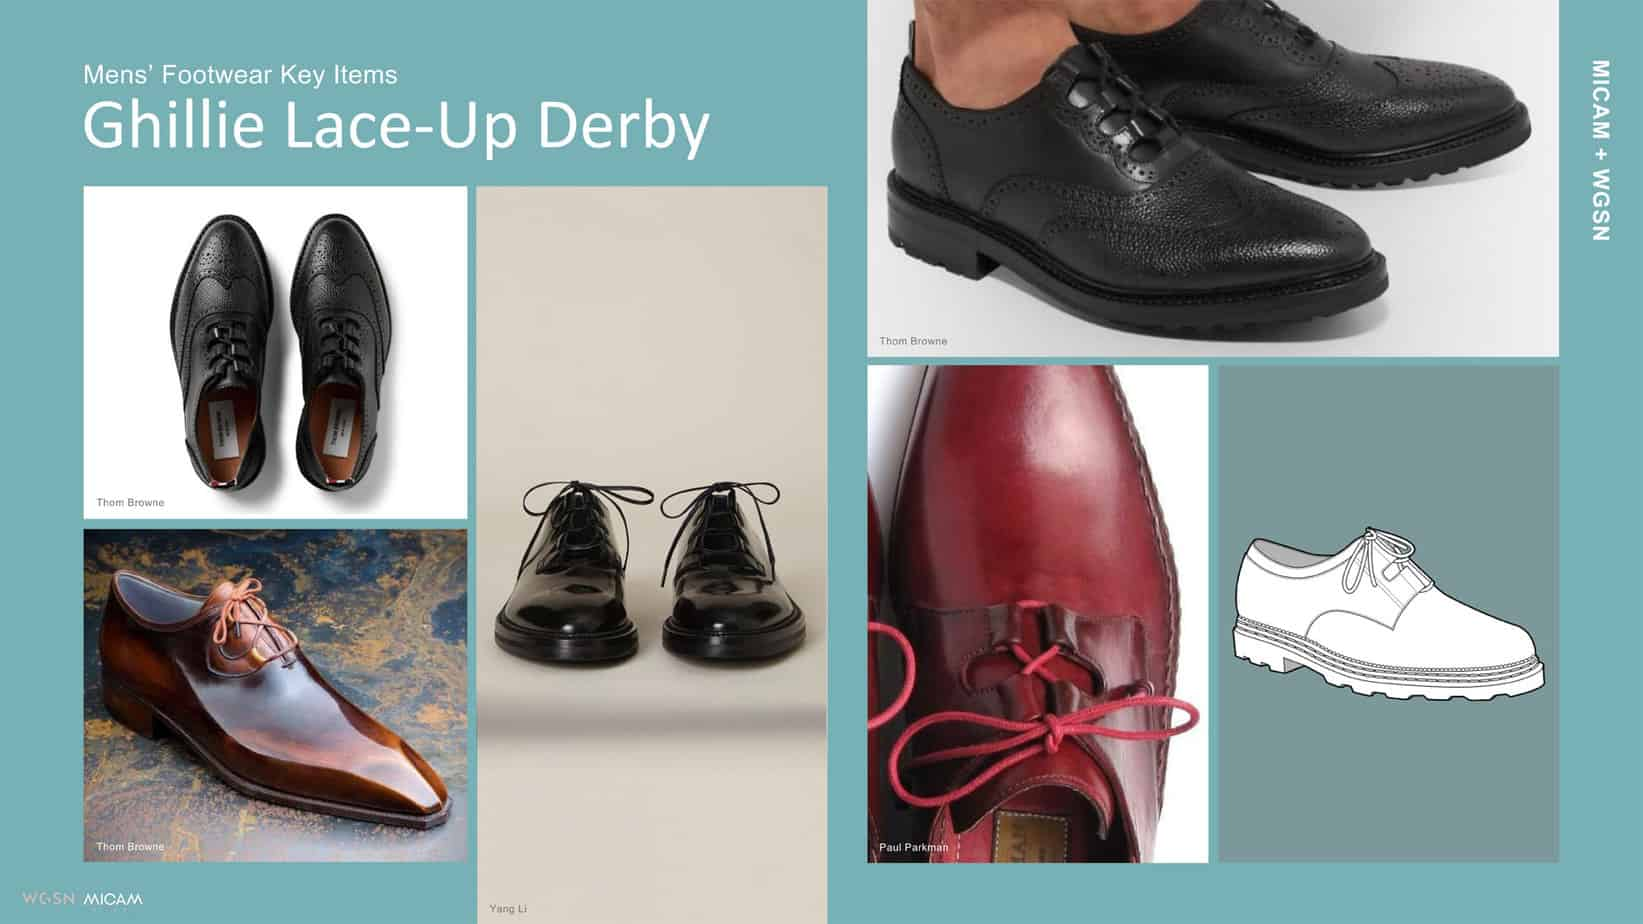 Mens' Footwear Key Items Ghillie Lace-Up Derby